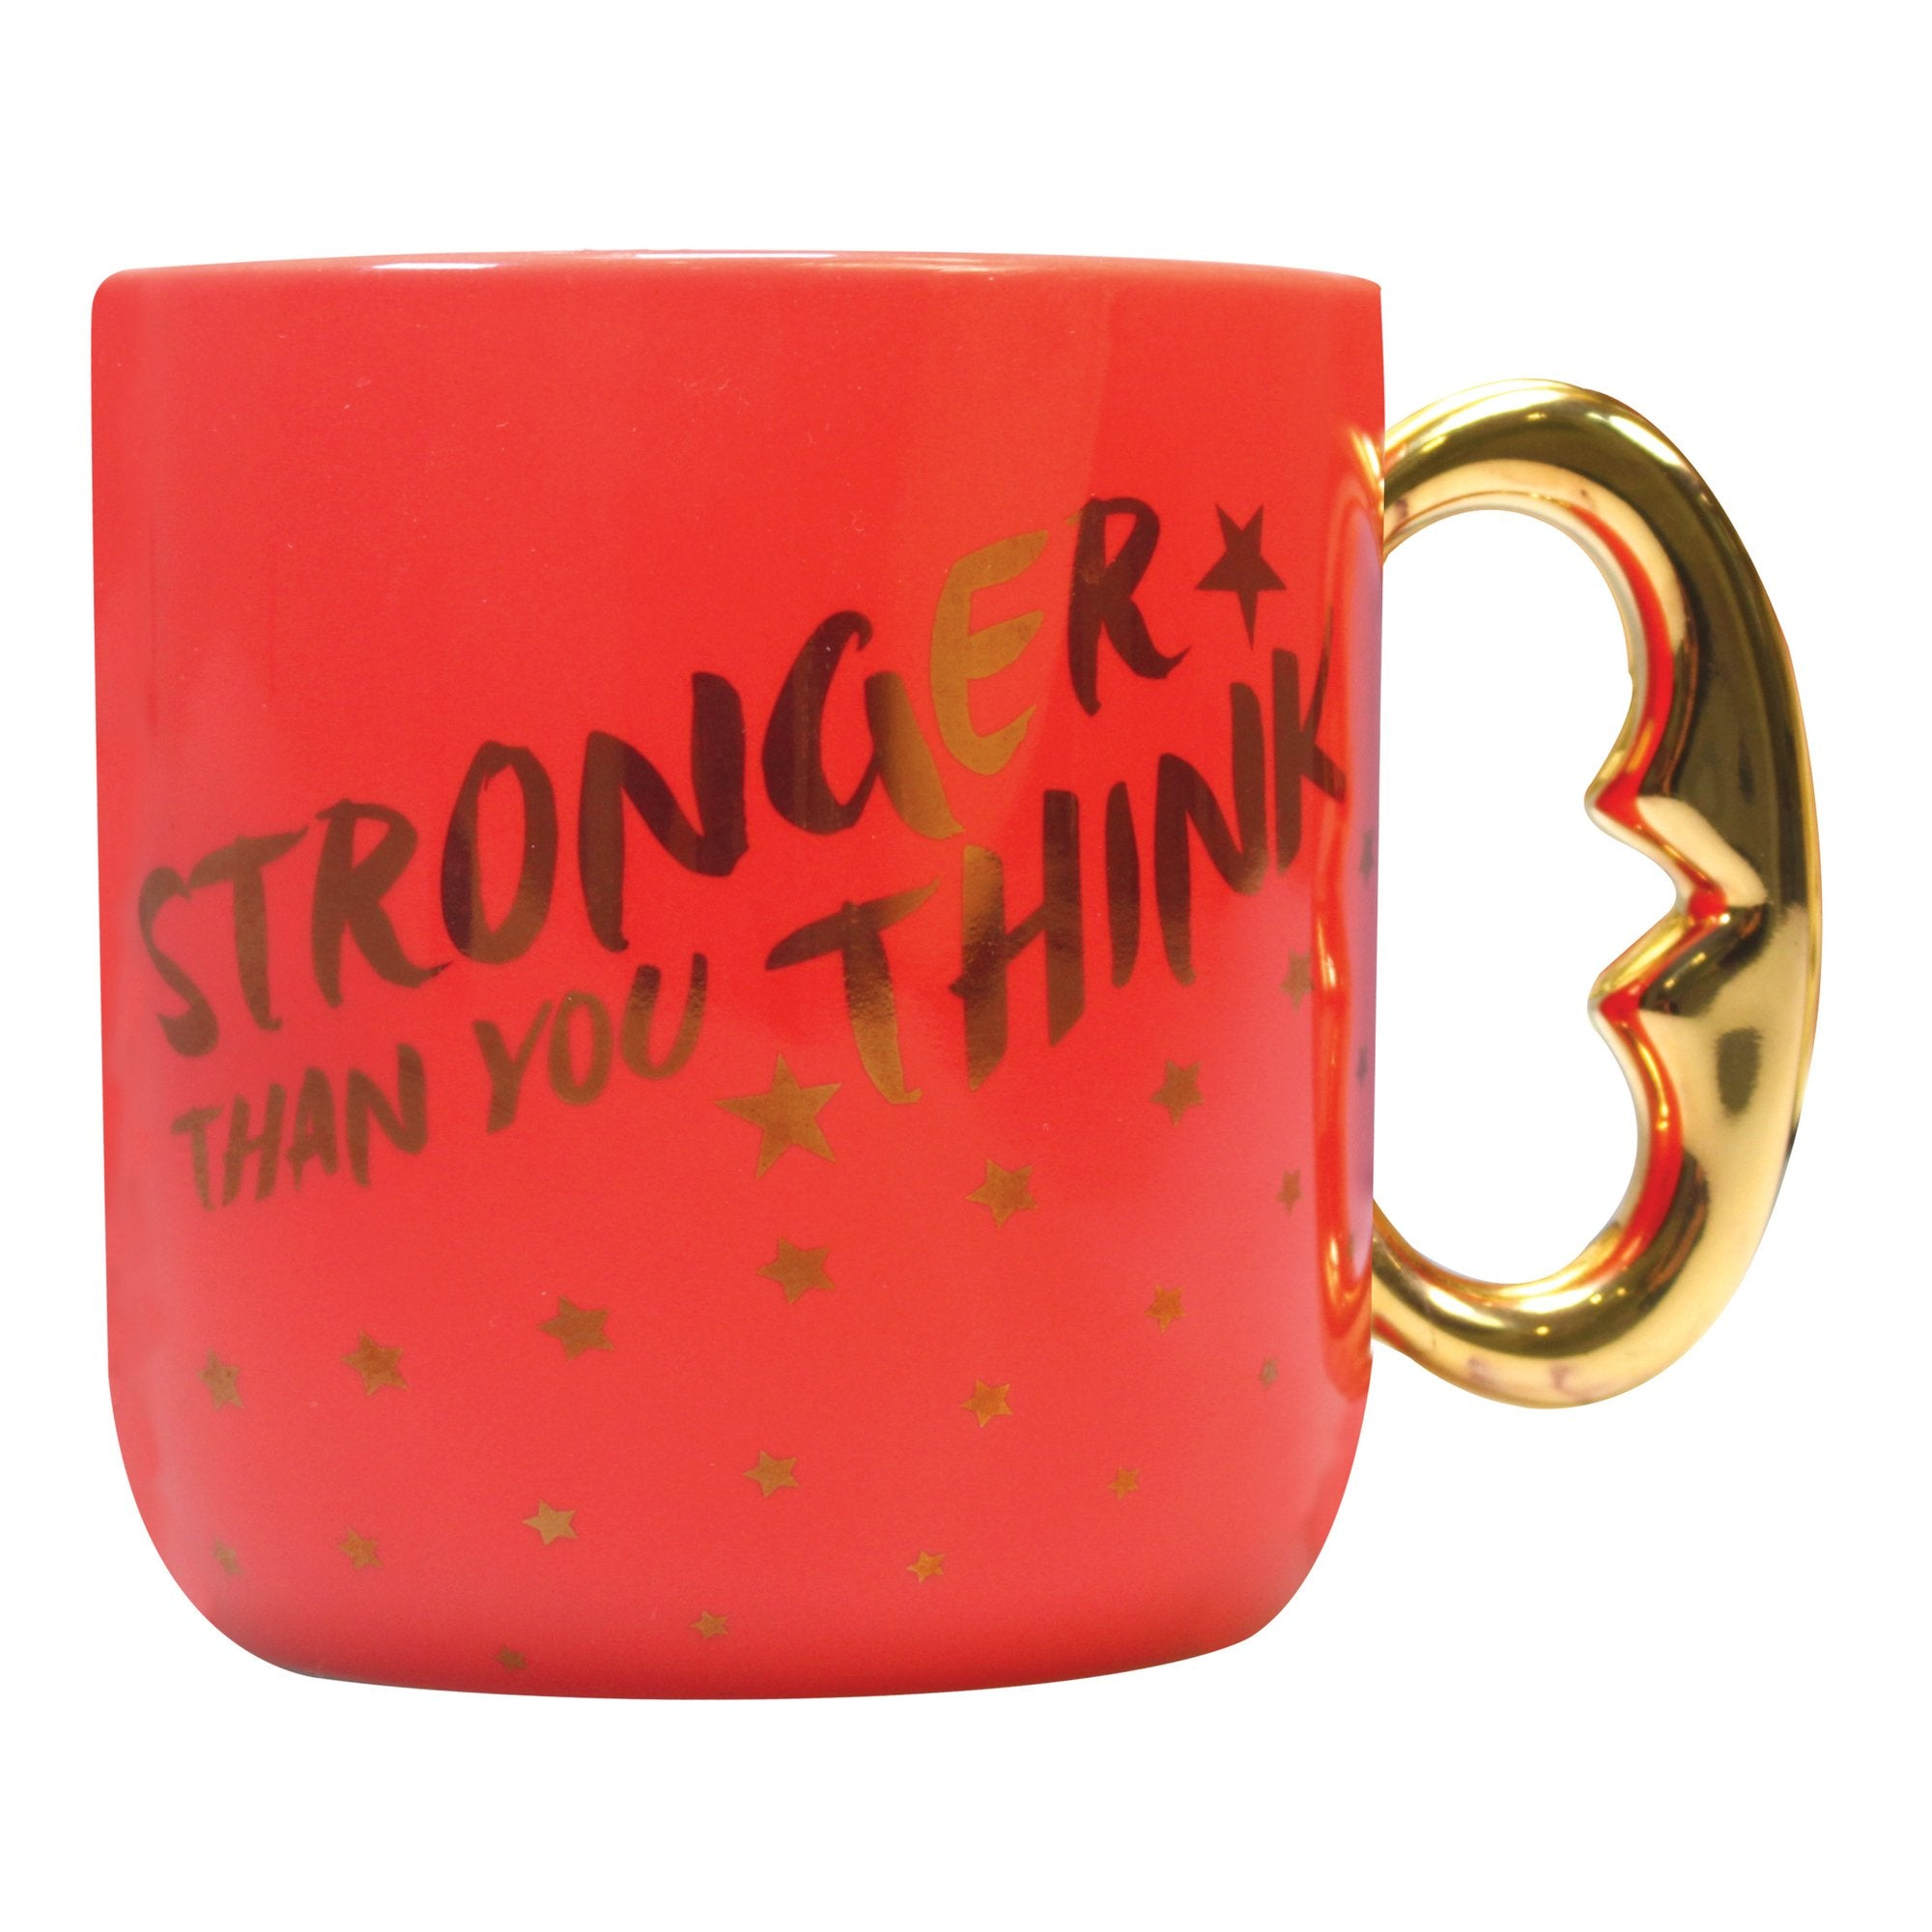 Wonder Woman Shaped Mug -Stronger Than You